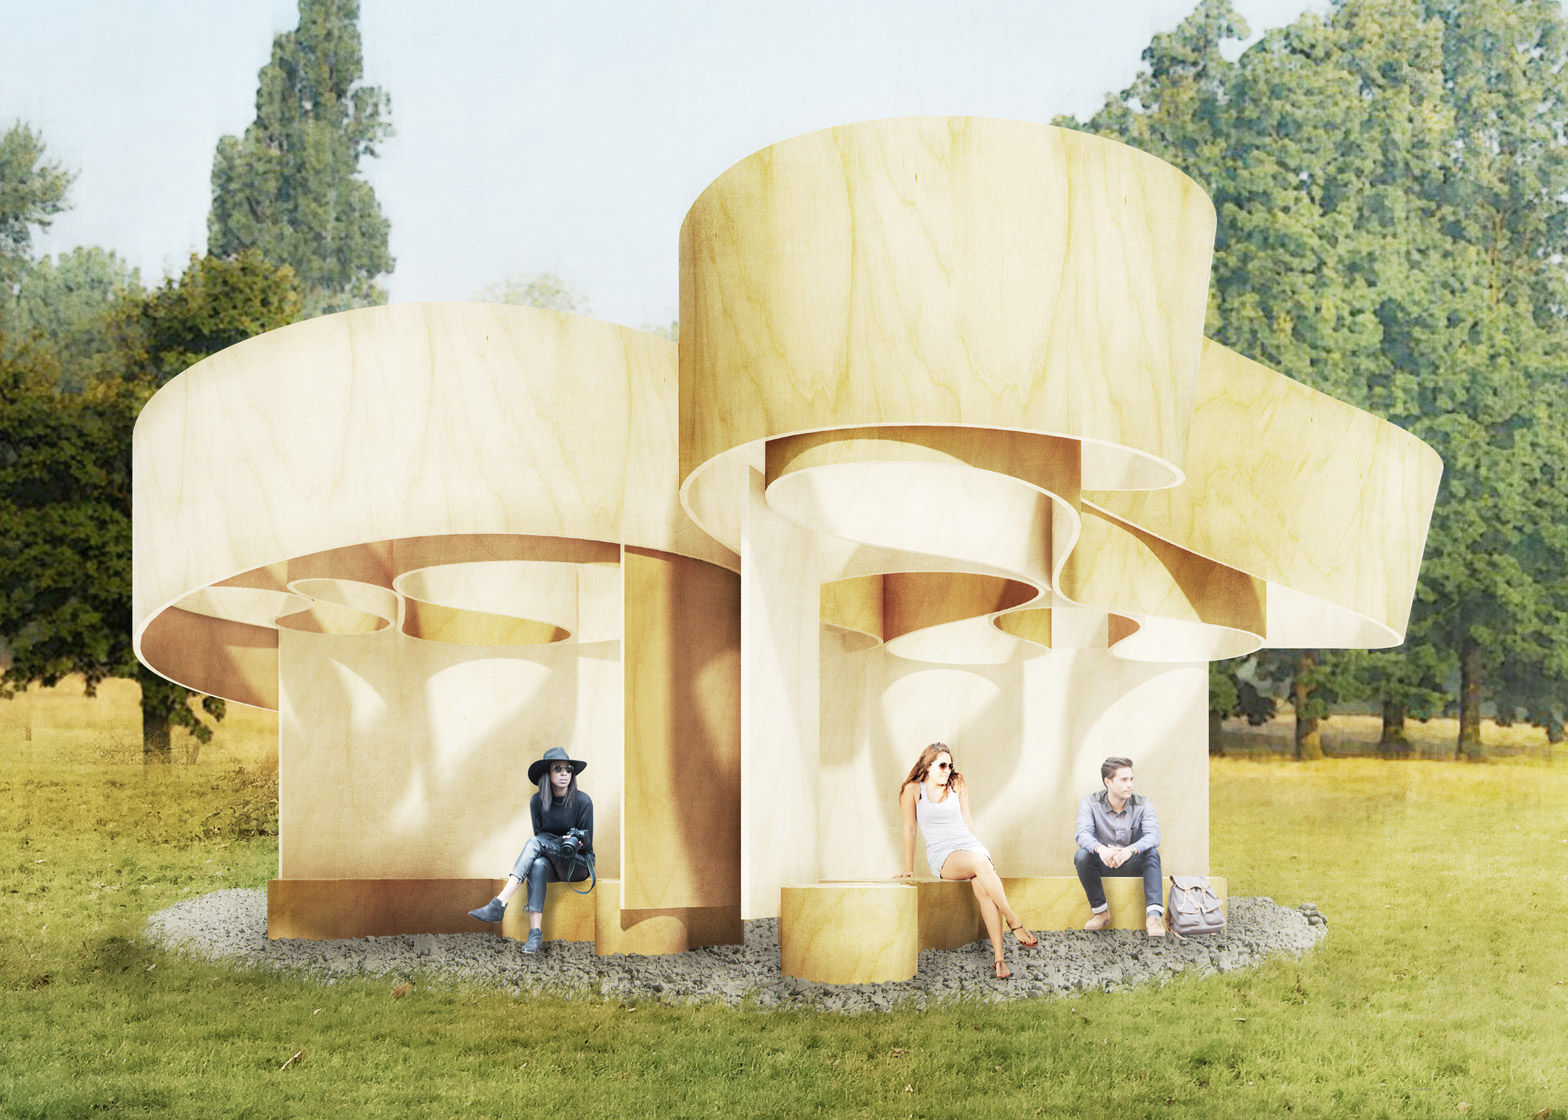 Superb Serpentine Summer Houses Include An Inverted Replica Building Largest Home Design Picture Inspirations Pitcheantrous